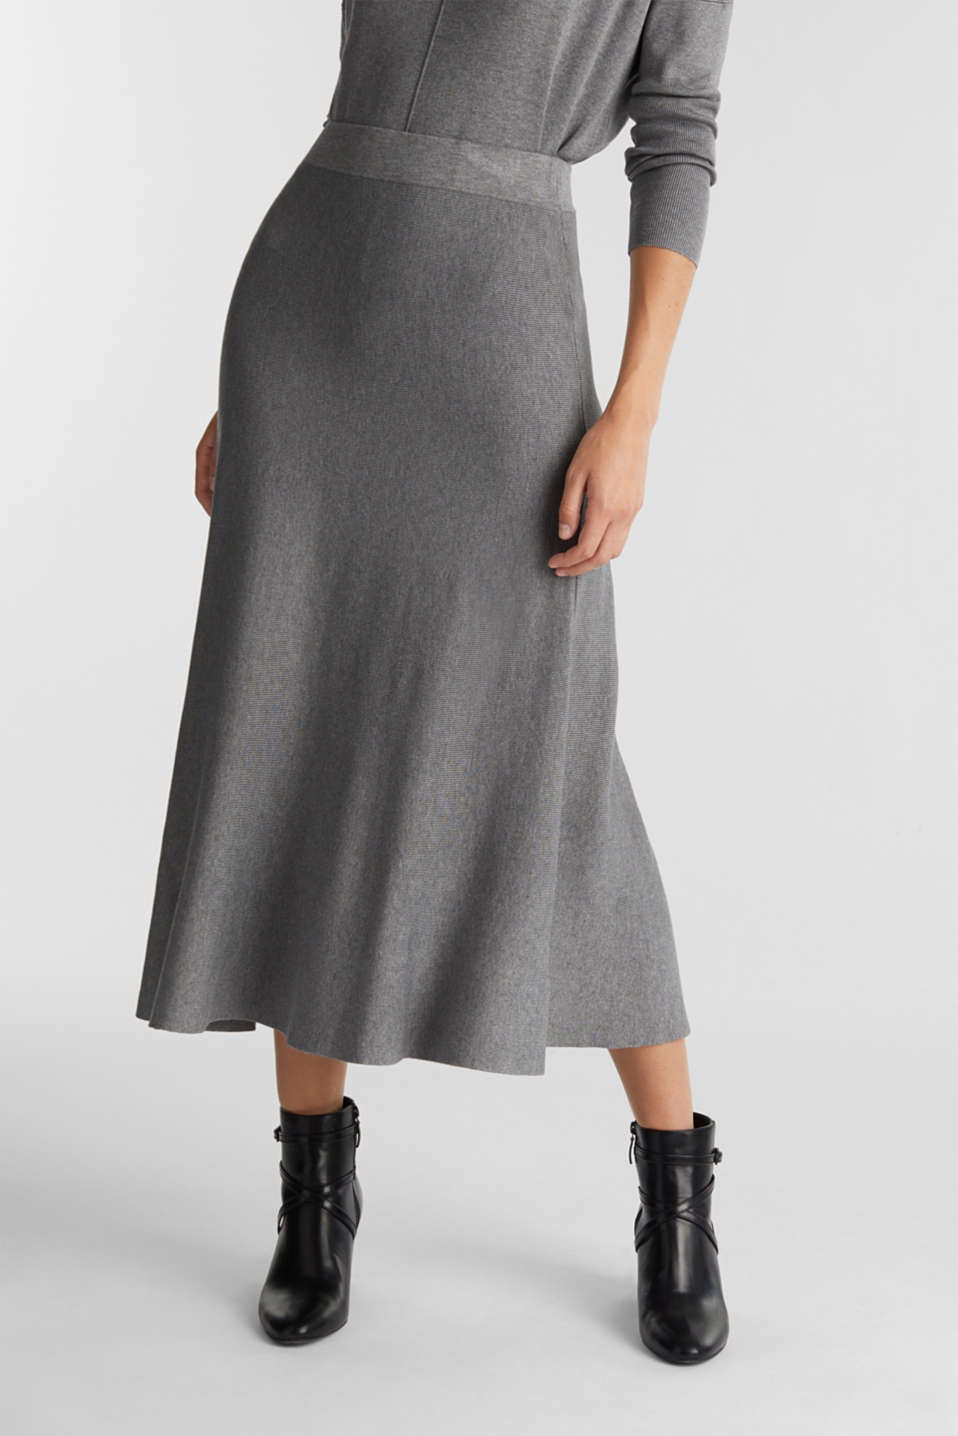 Esprit - Knitted skirt made of LENZING™ ECOVERO™